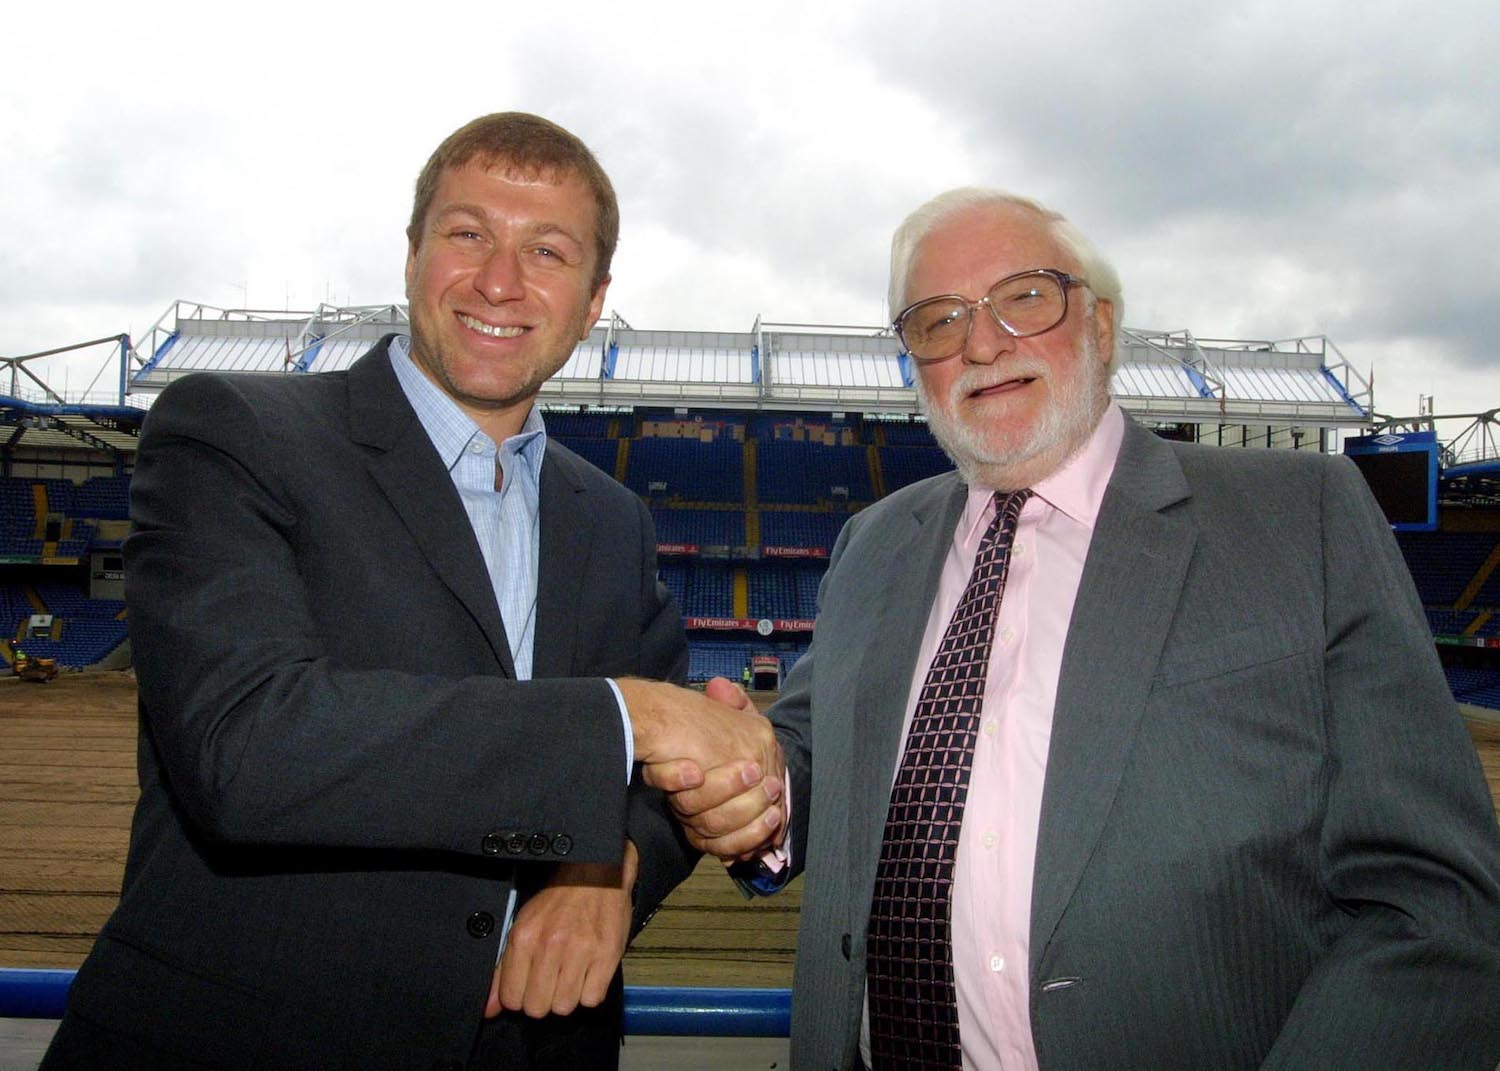 New owner of Chelsea FC Roman Abramovich shaking hands with previous owner Ken Bates in Stamford Bridge stadium